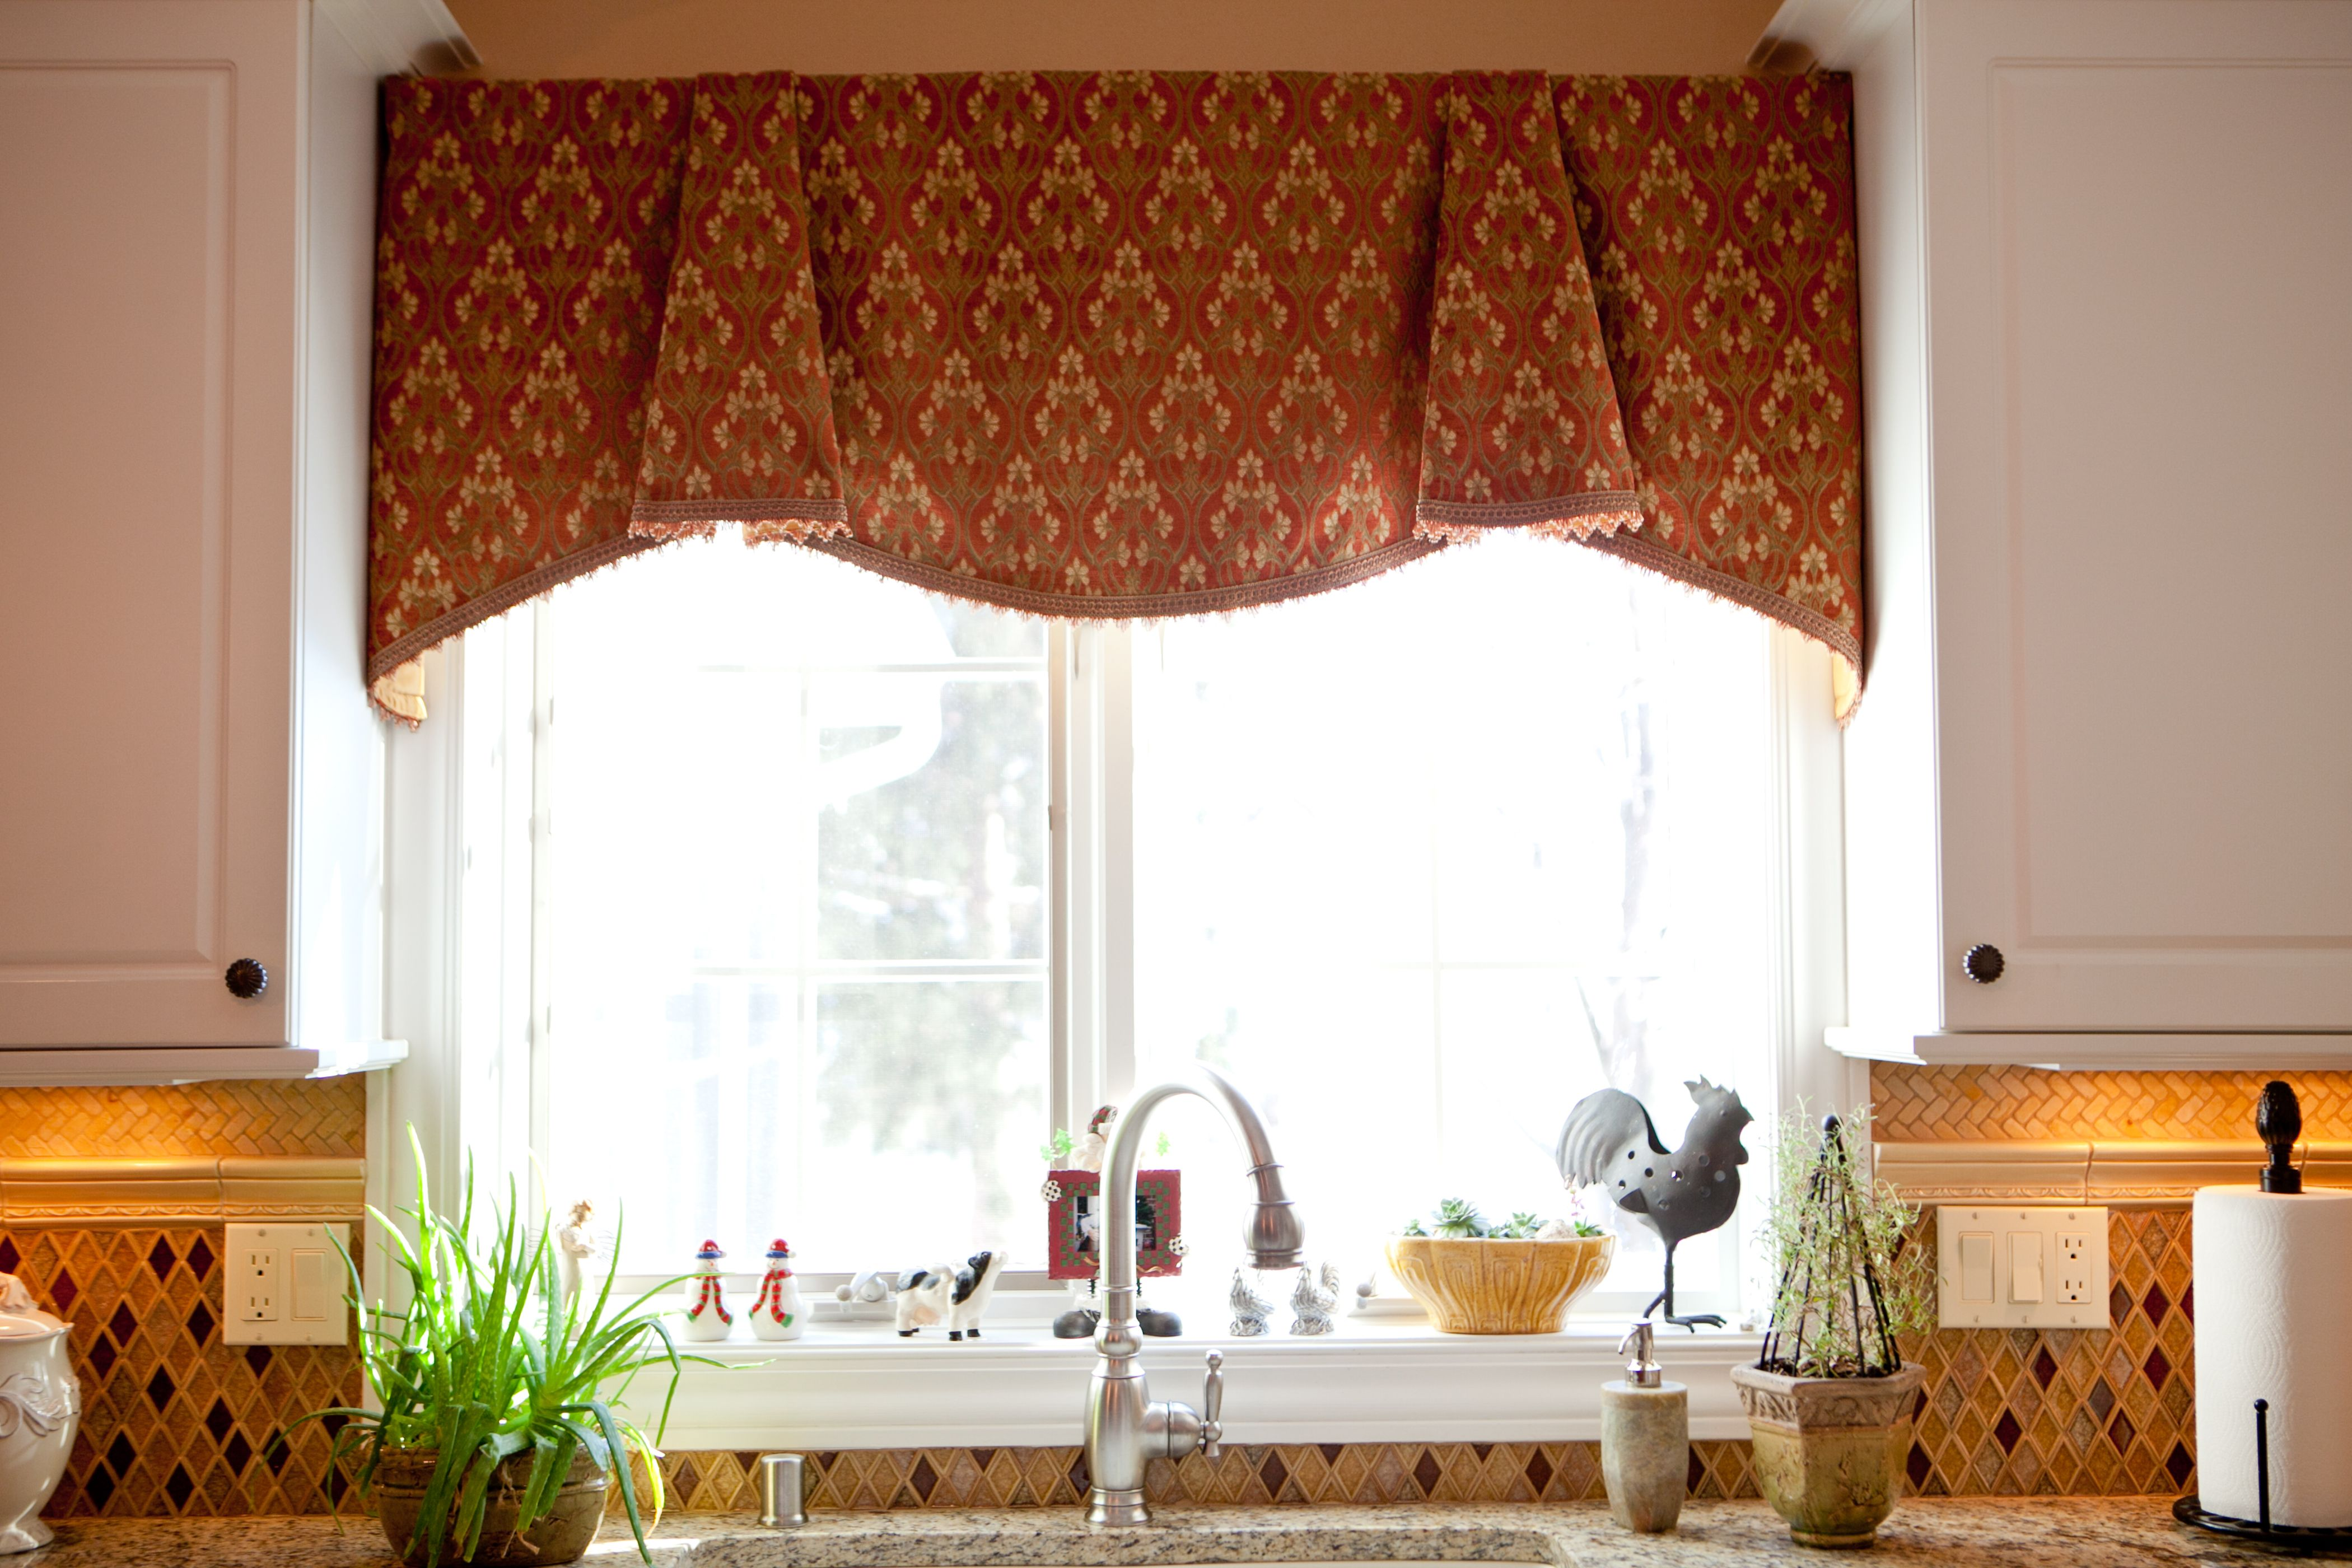 Kitchen ideas kitchen nice looking brown fabric geometric patterns window valance ideas for double glass windows